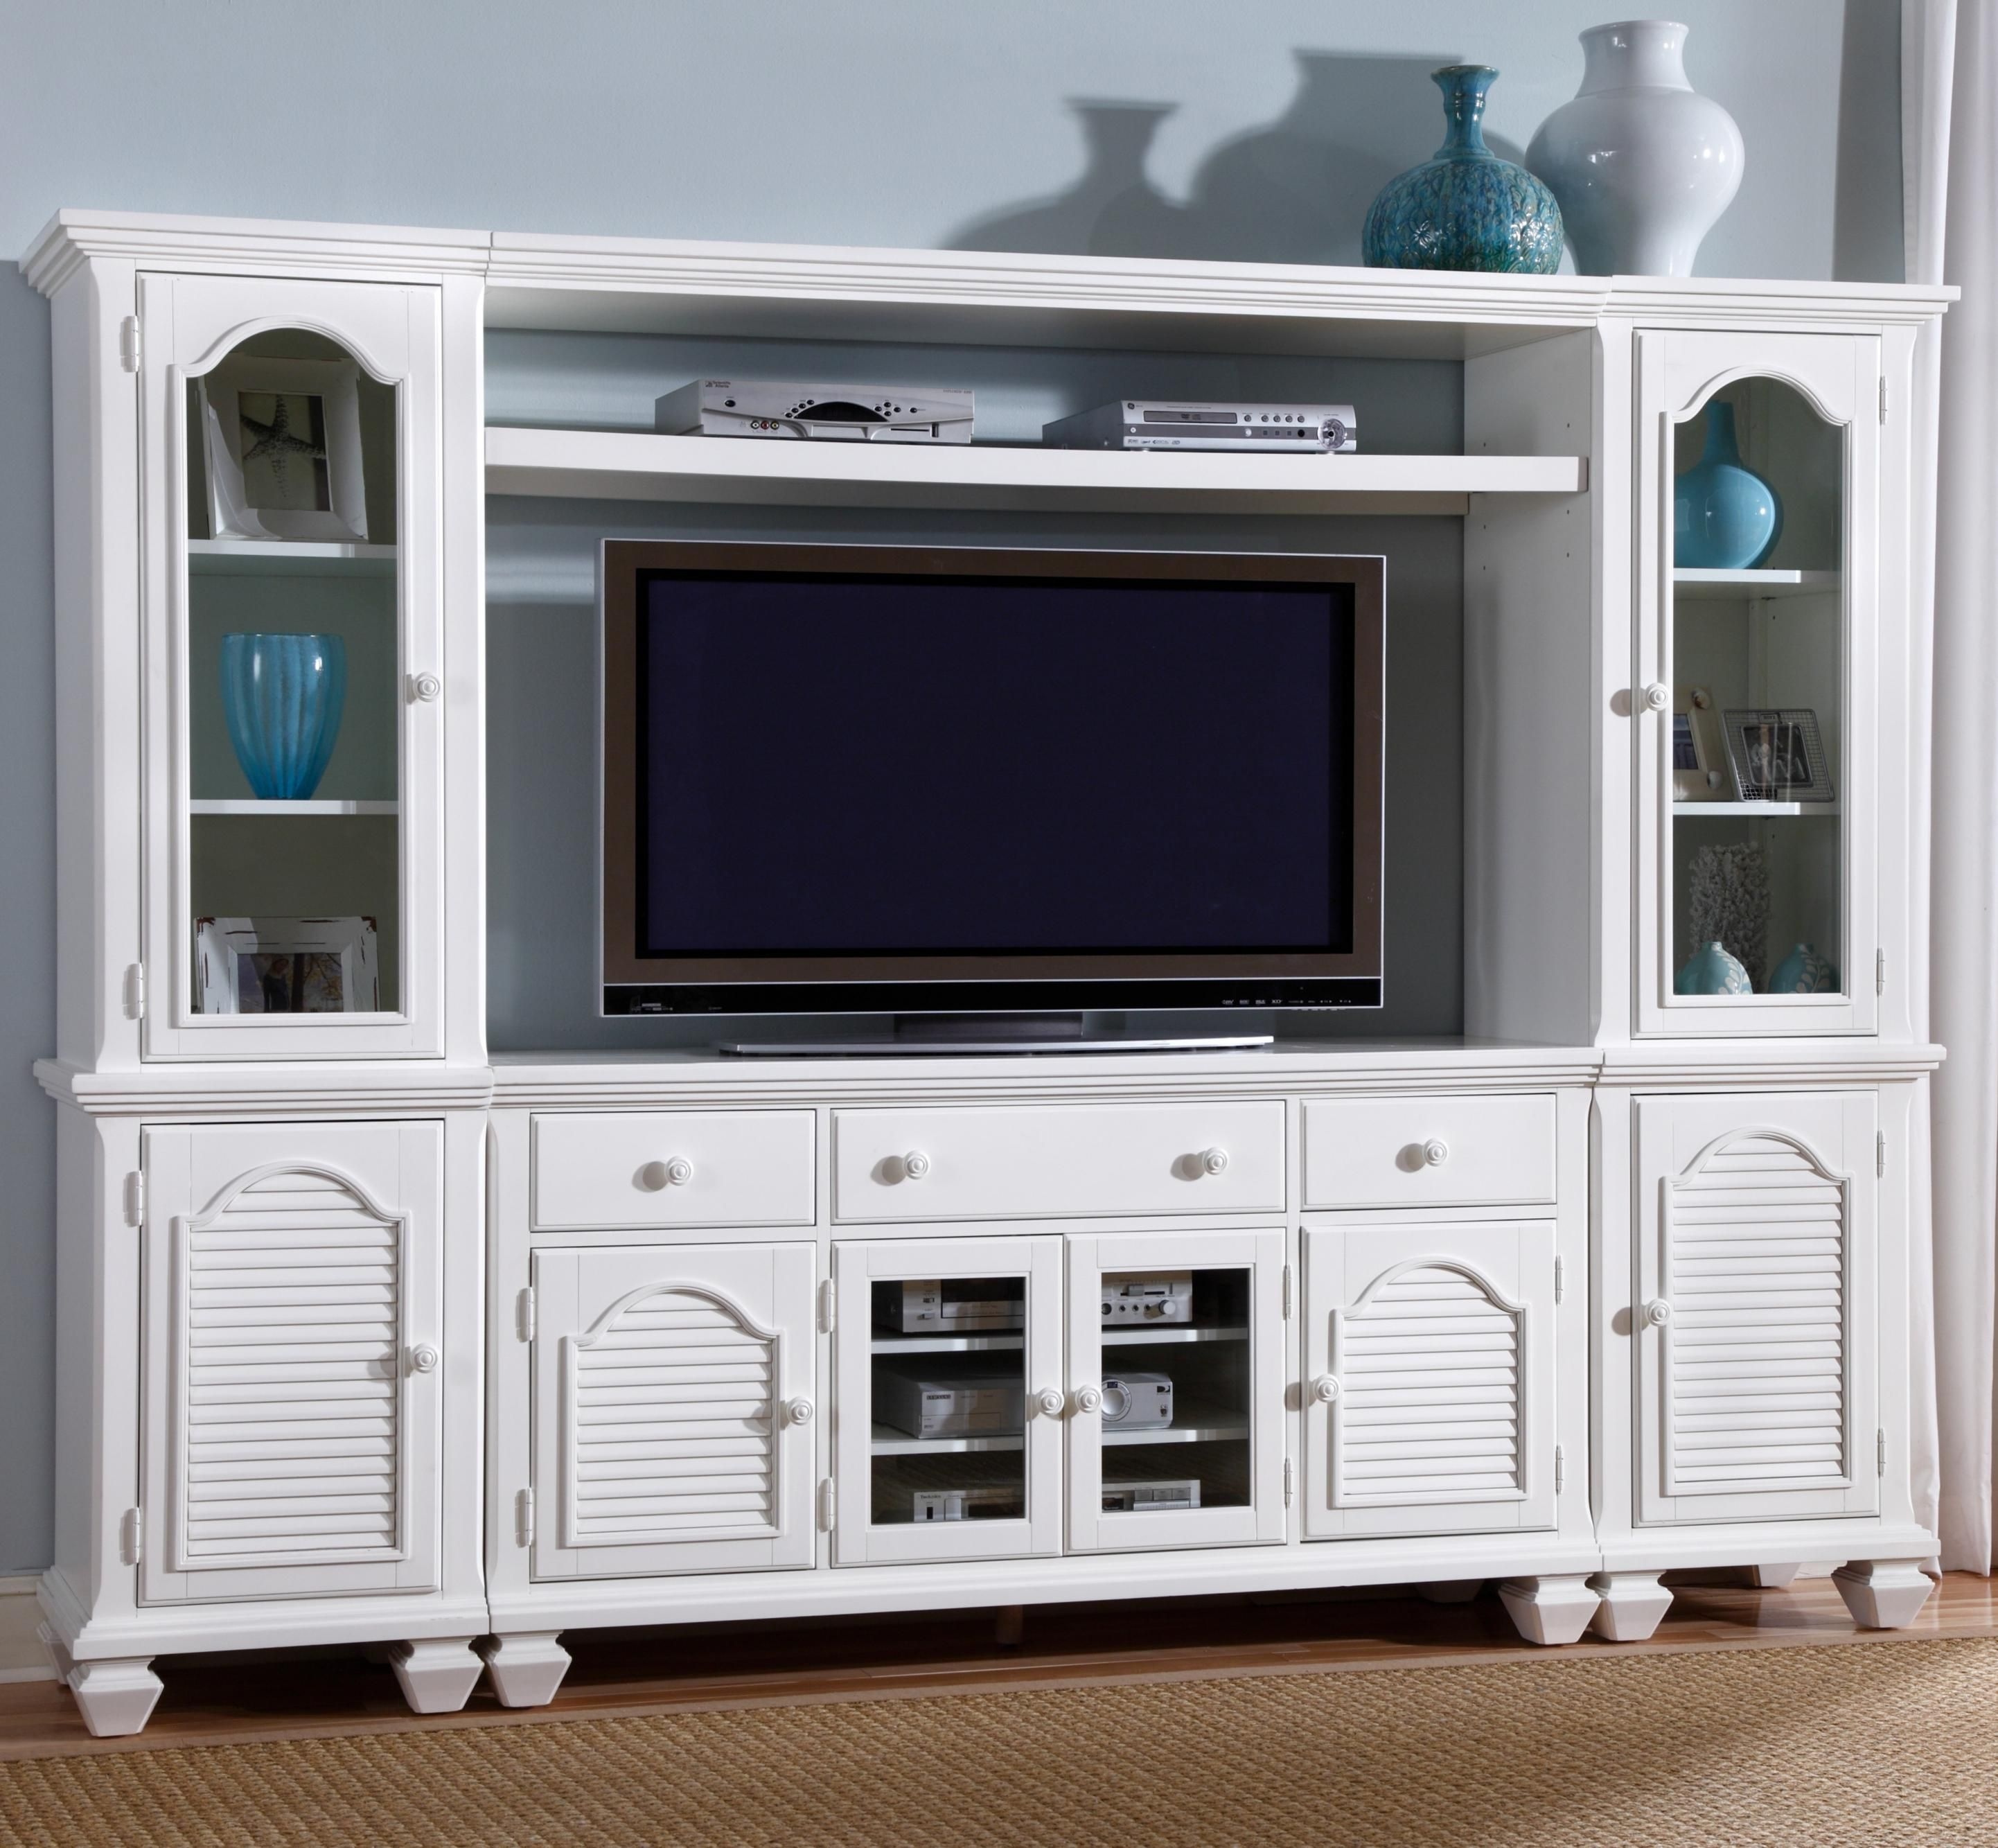 Lovely Broyhill Furniture Mirren Harbor Wall Entertainment Center At Knoxville  Wholesale Furniture